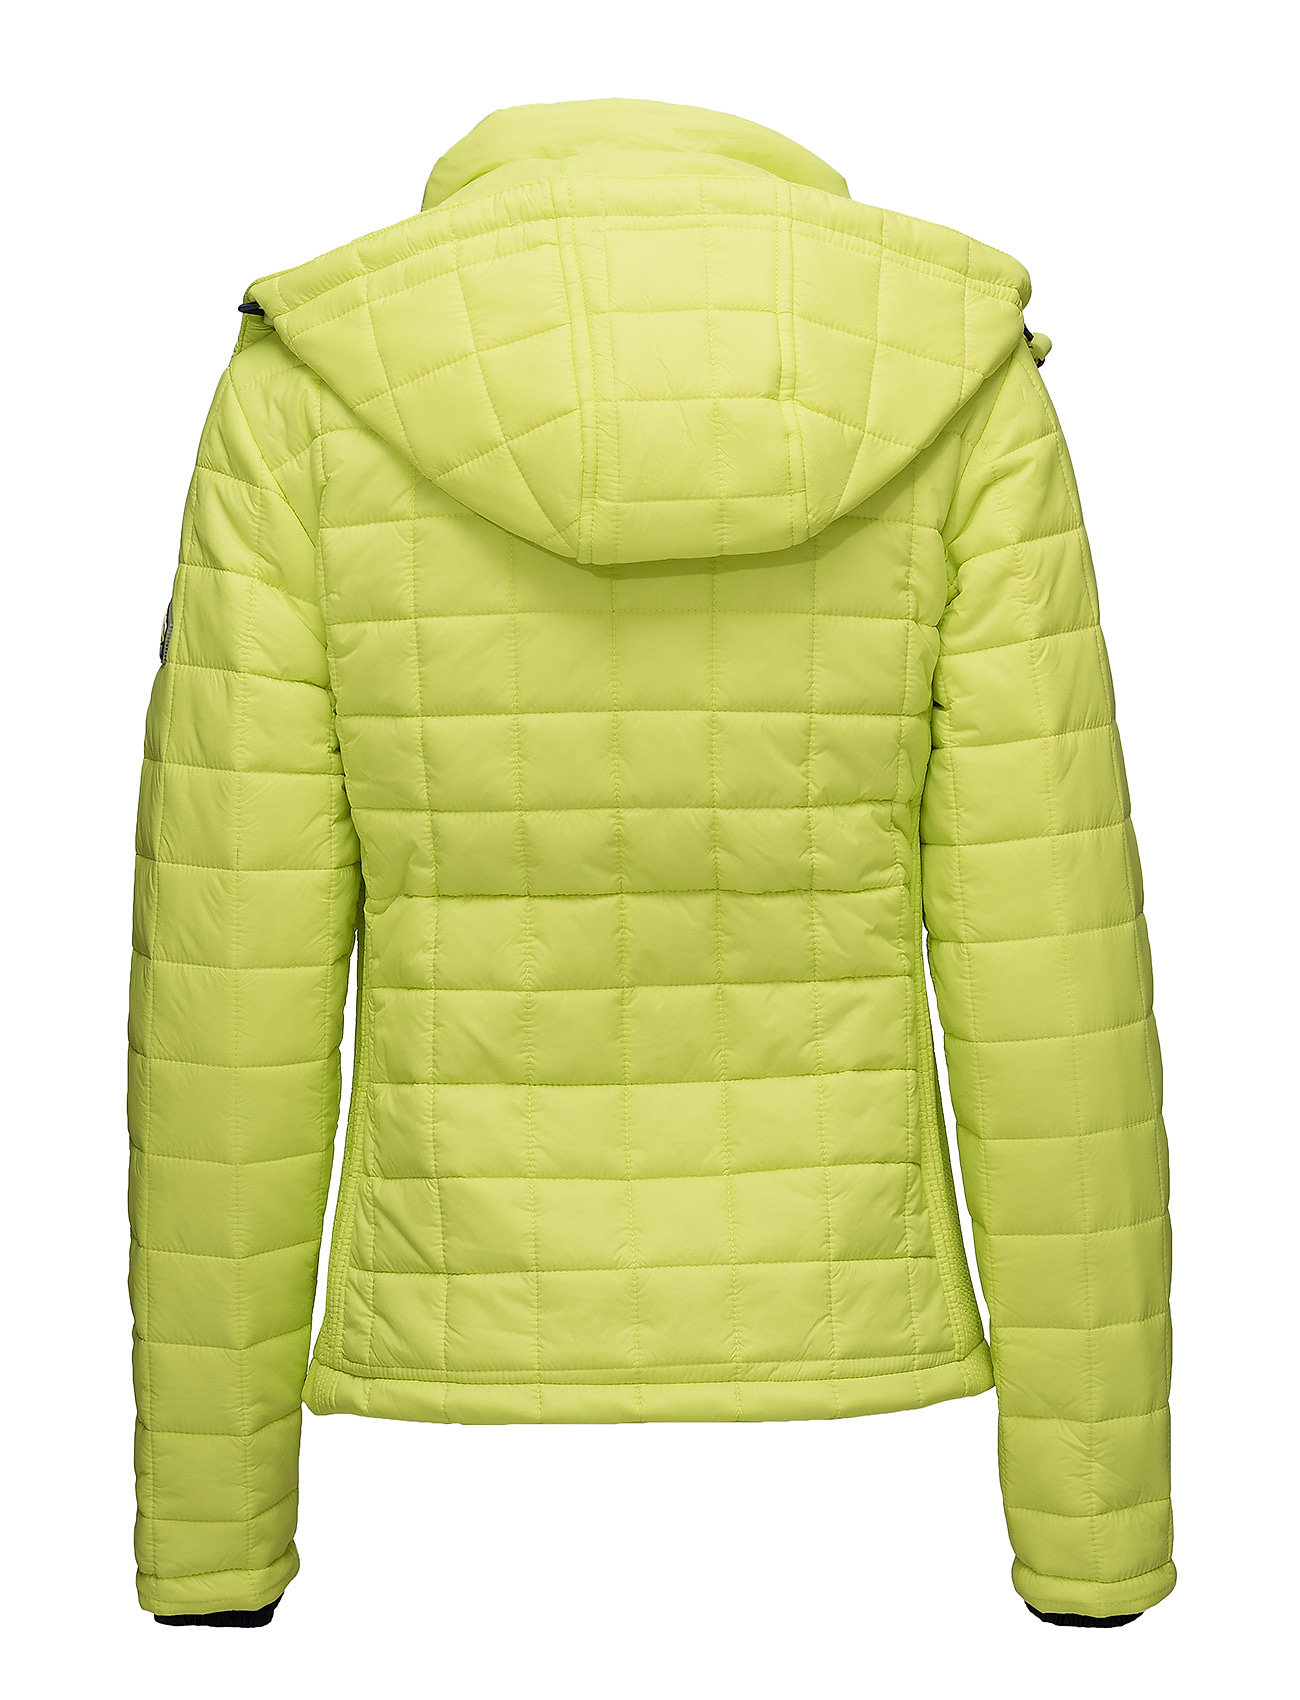 YellowSuperdry Box Code Hooded Fuji Quilt Jacketsport shrtQd